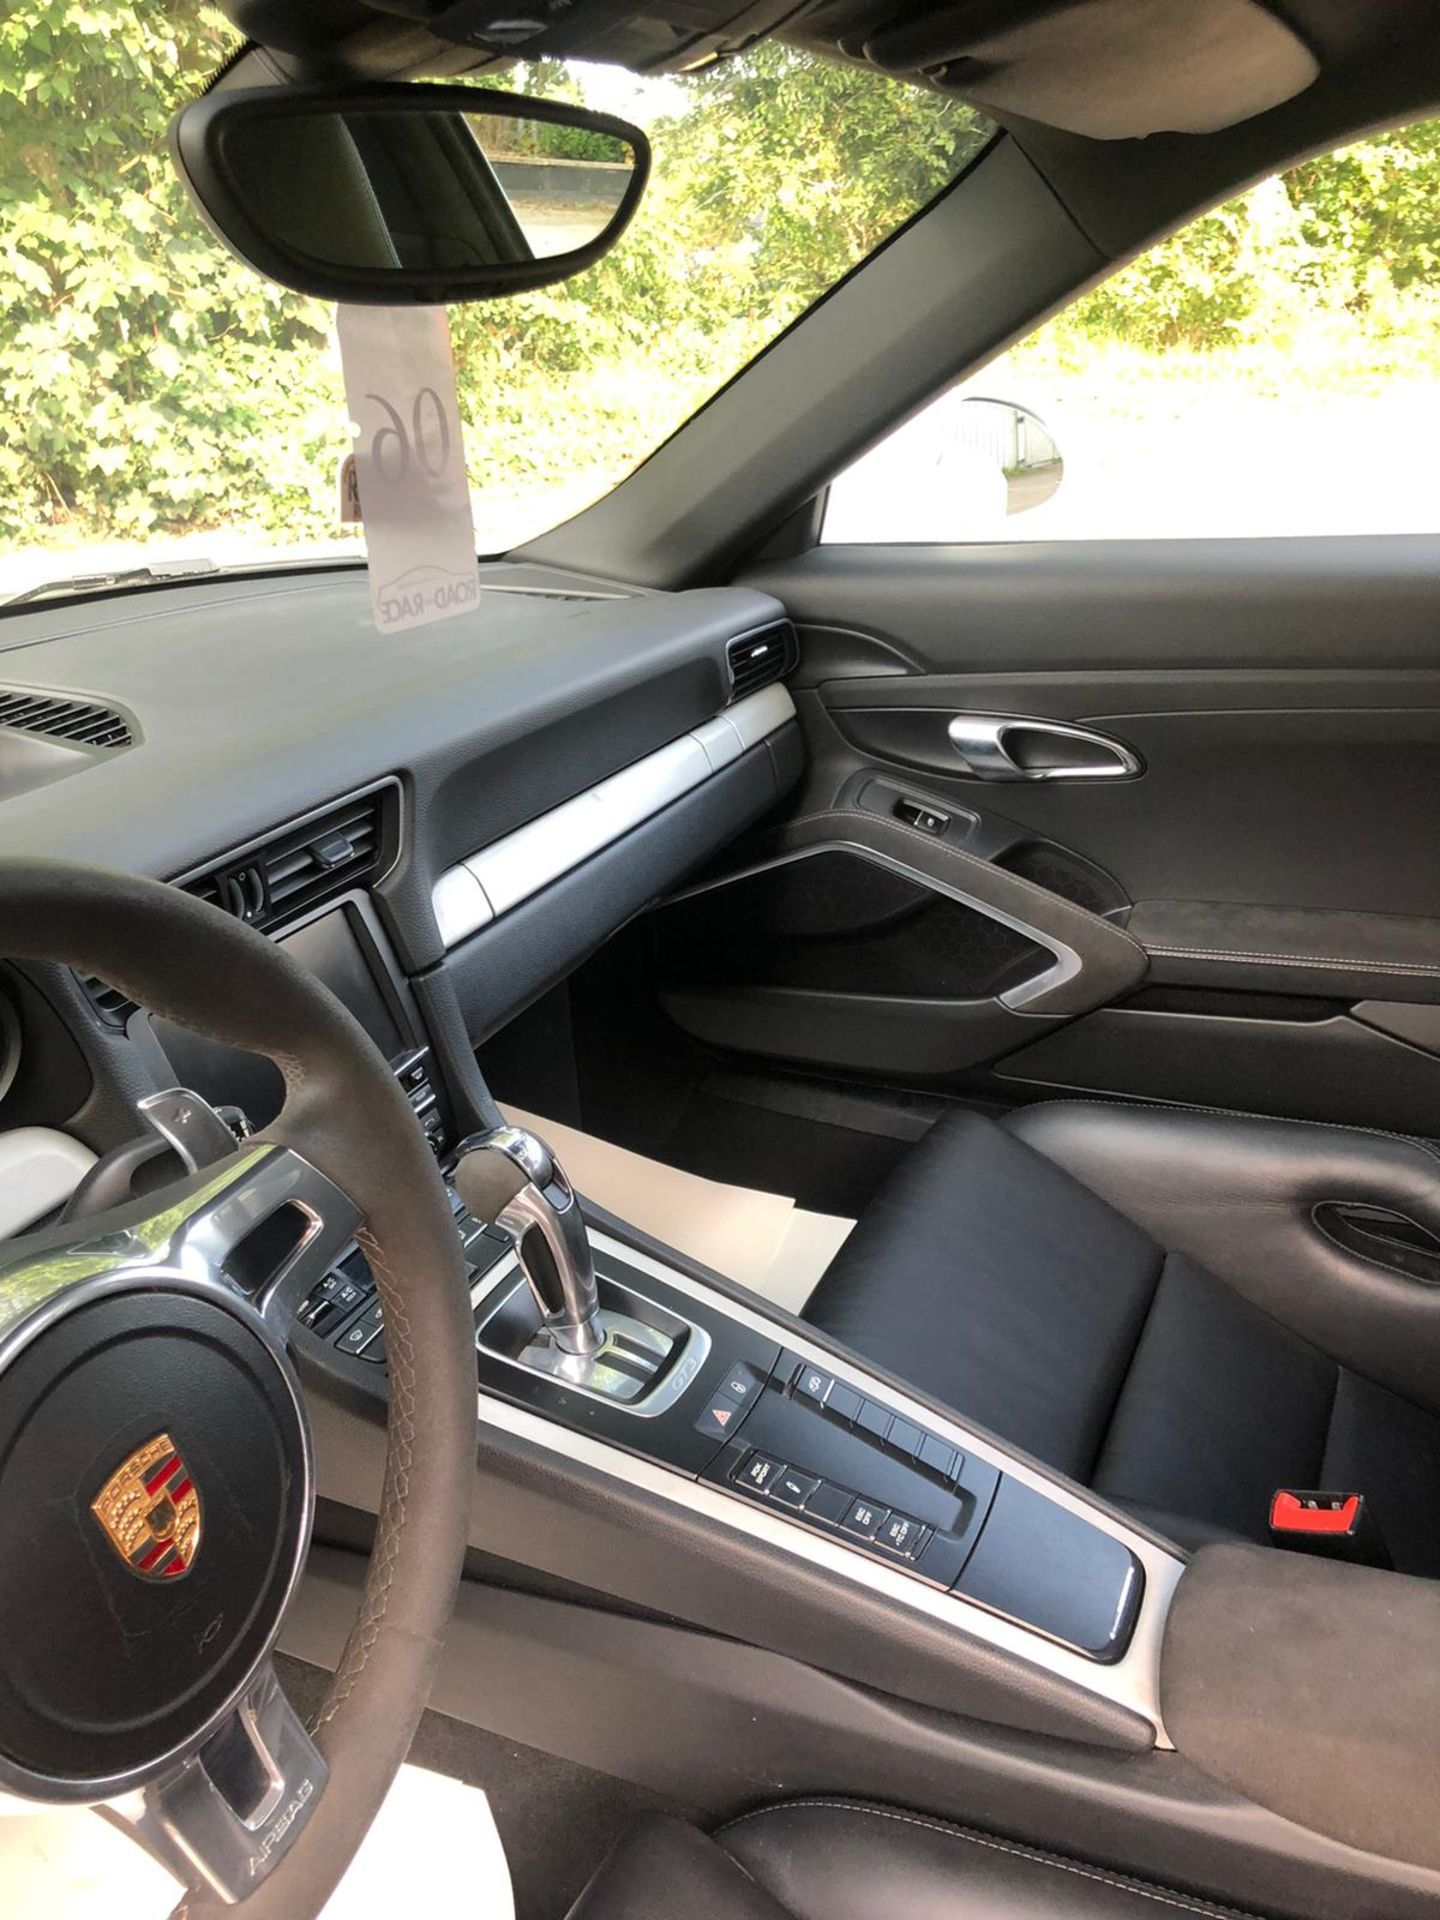 2014 PORSCHE GT3, CLUB SPORT ROLL CAGE, RACE SEATS CARBON KIT, 29,000 MILES, FULL PORSCHE HISTORY - Image 16 of 29